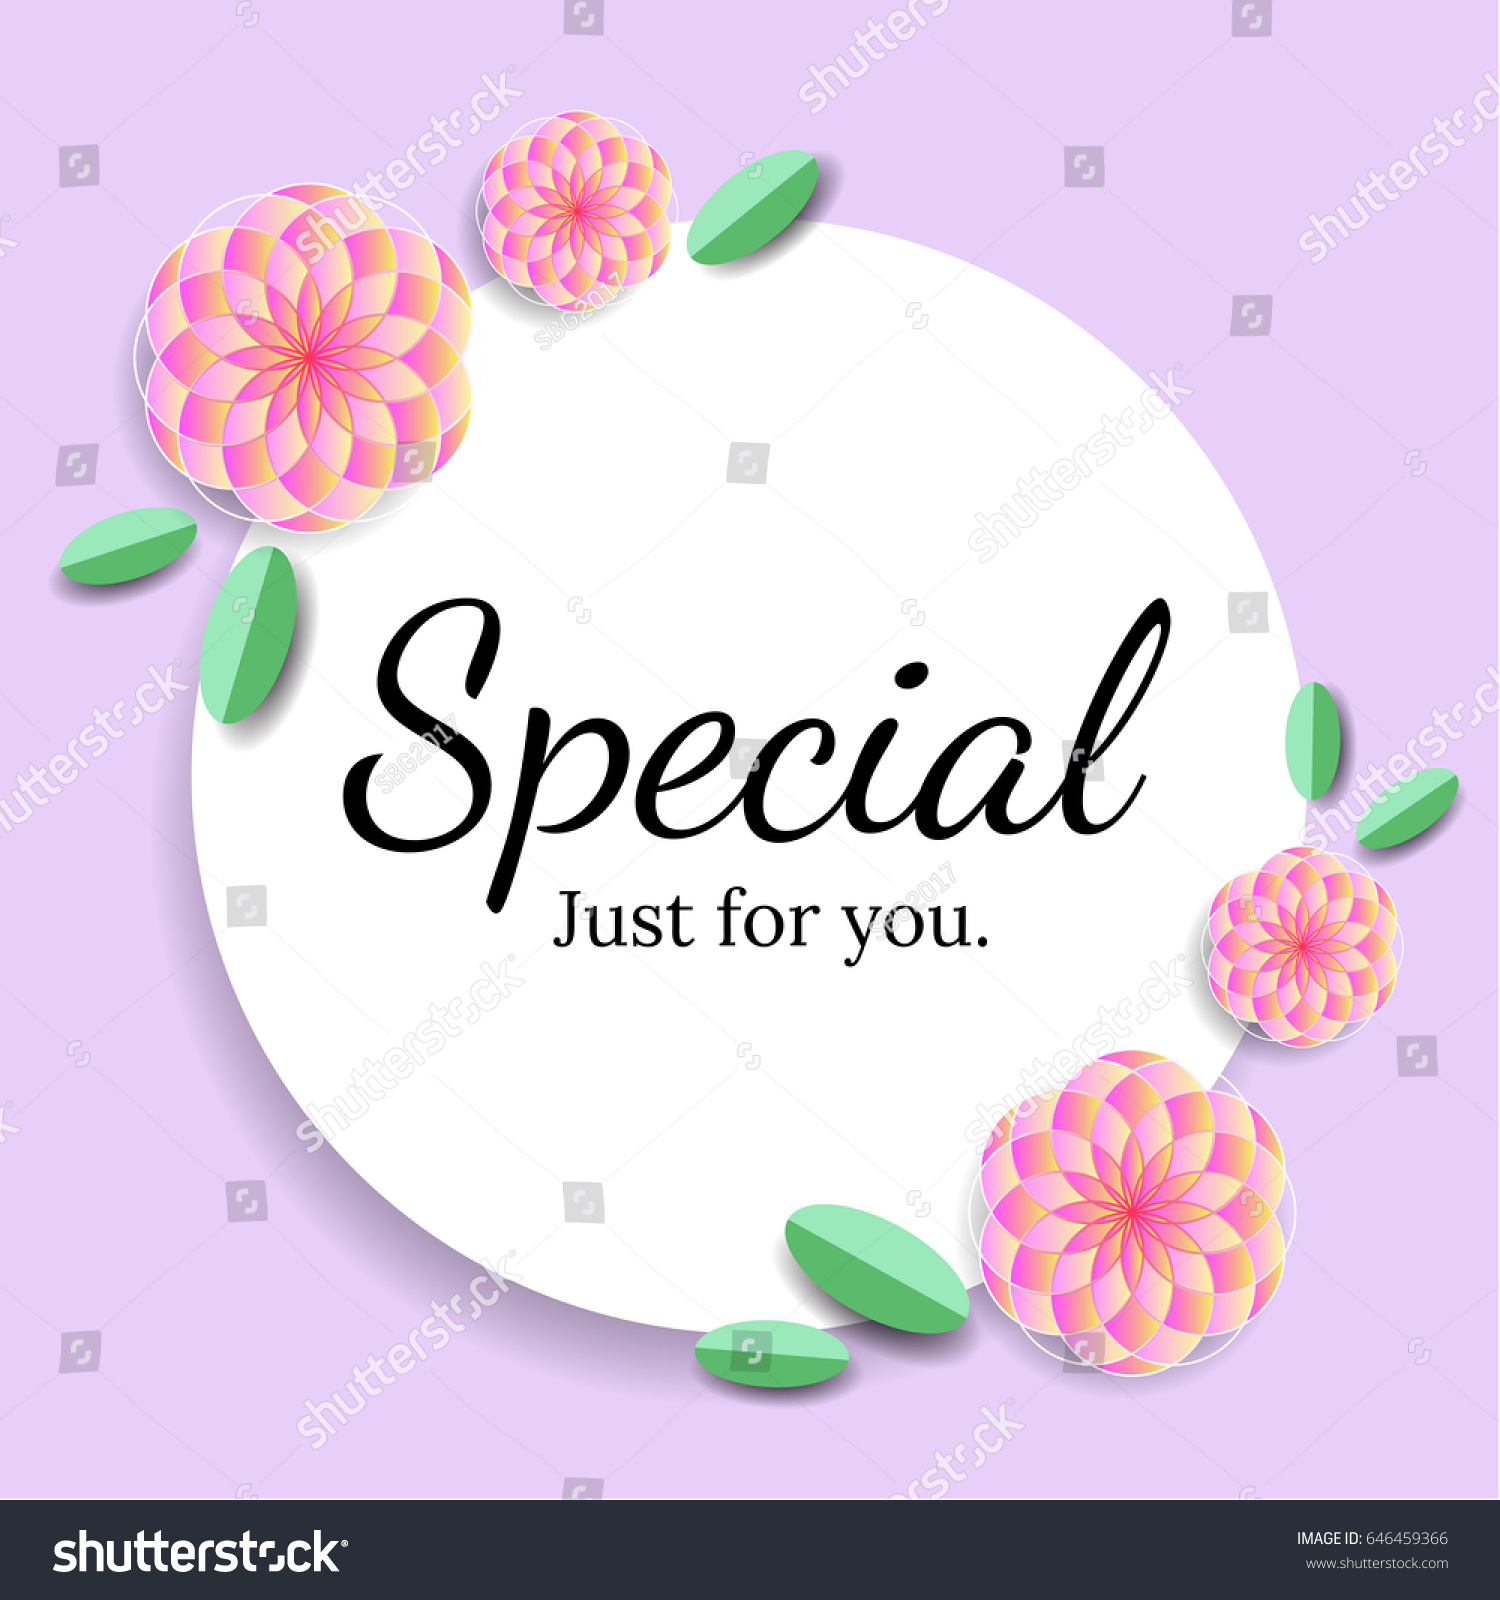 Special Just For You Card With Pink Flowers Vector Illustration Design Banners